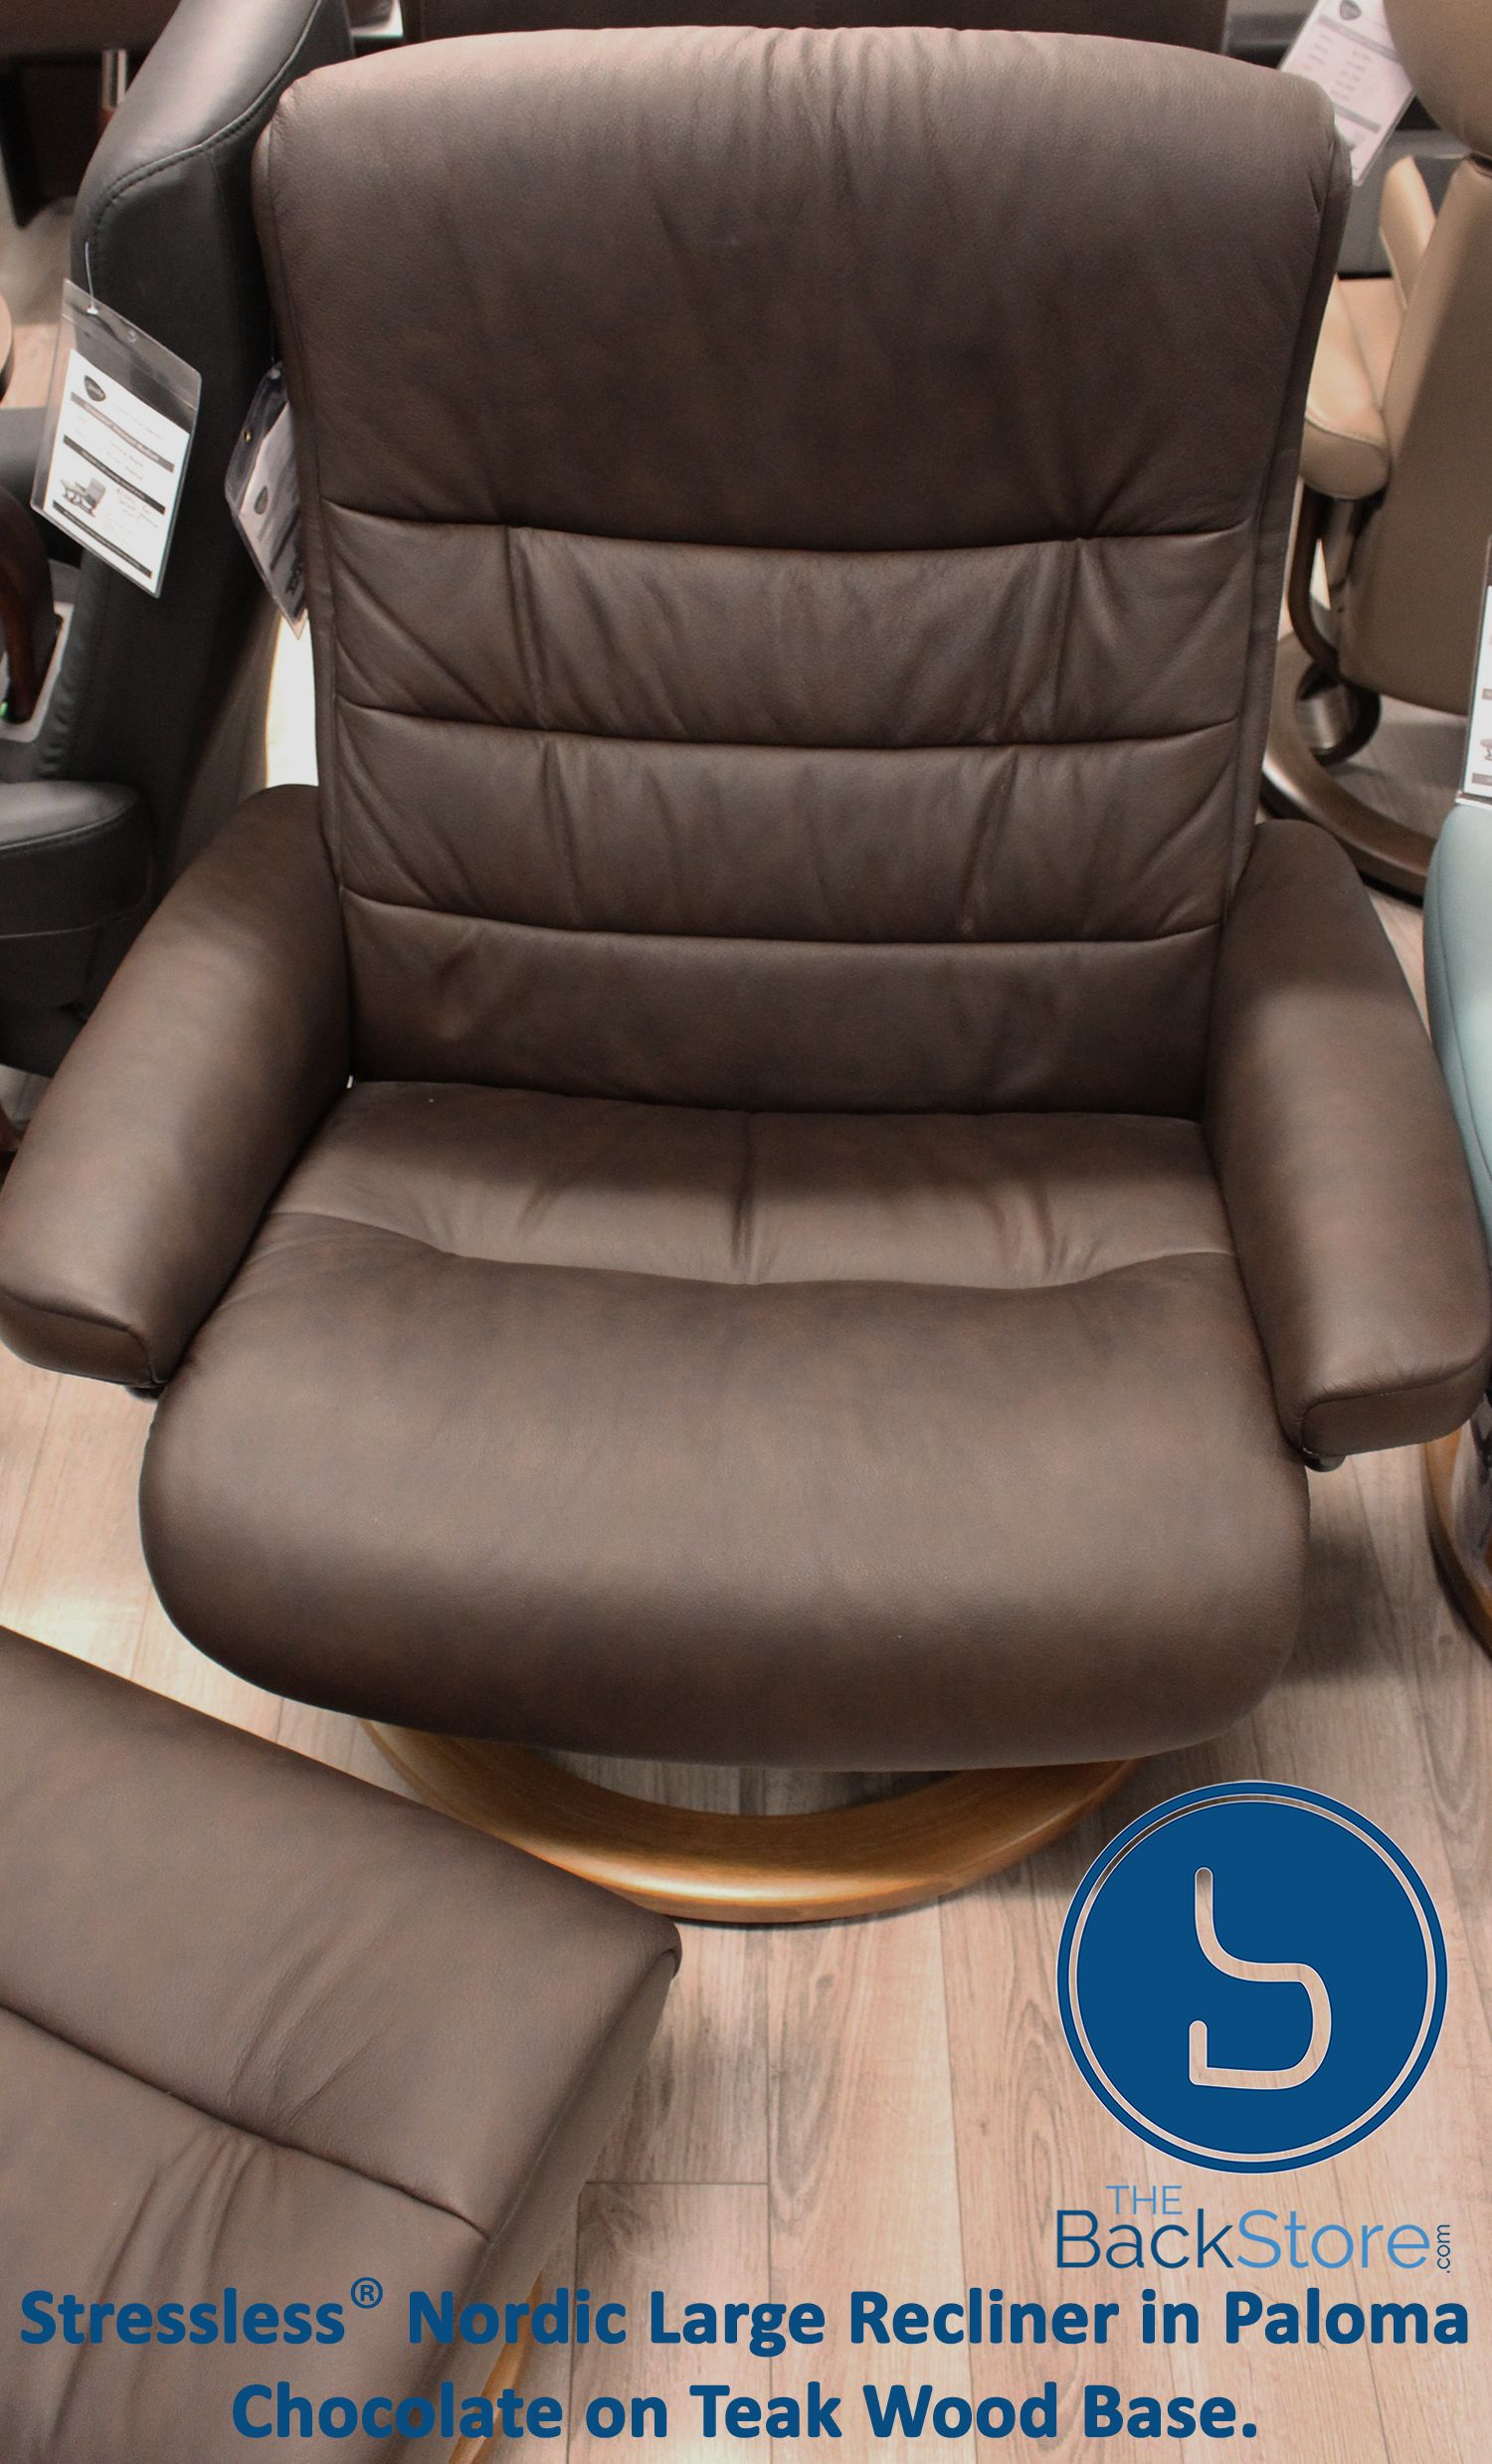 Stressless Nordic Legcomfort Pin By Trafecanty On Love This Chair Leather Recliner Chair Chair